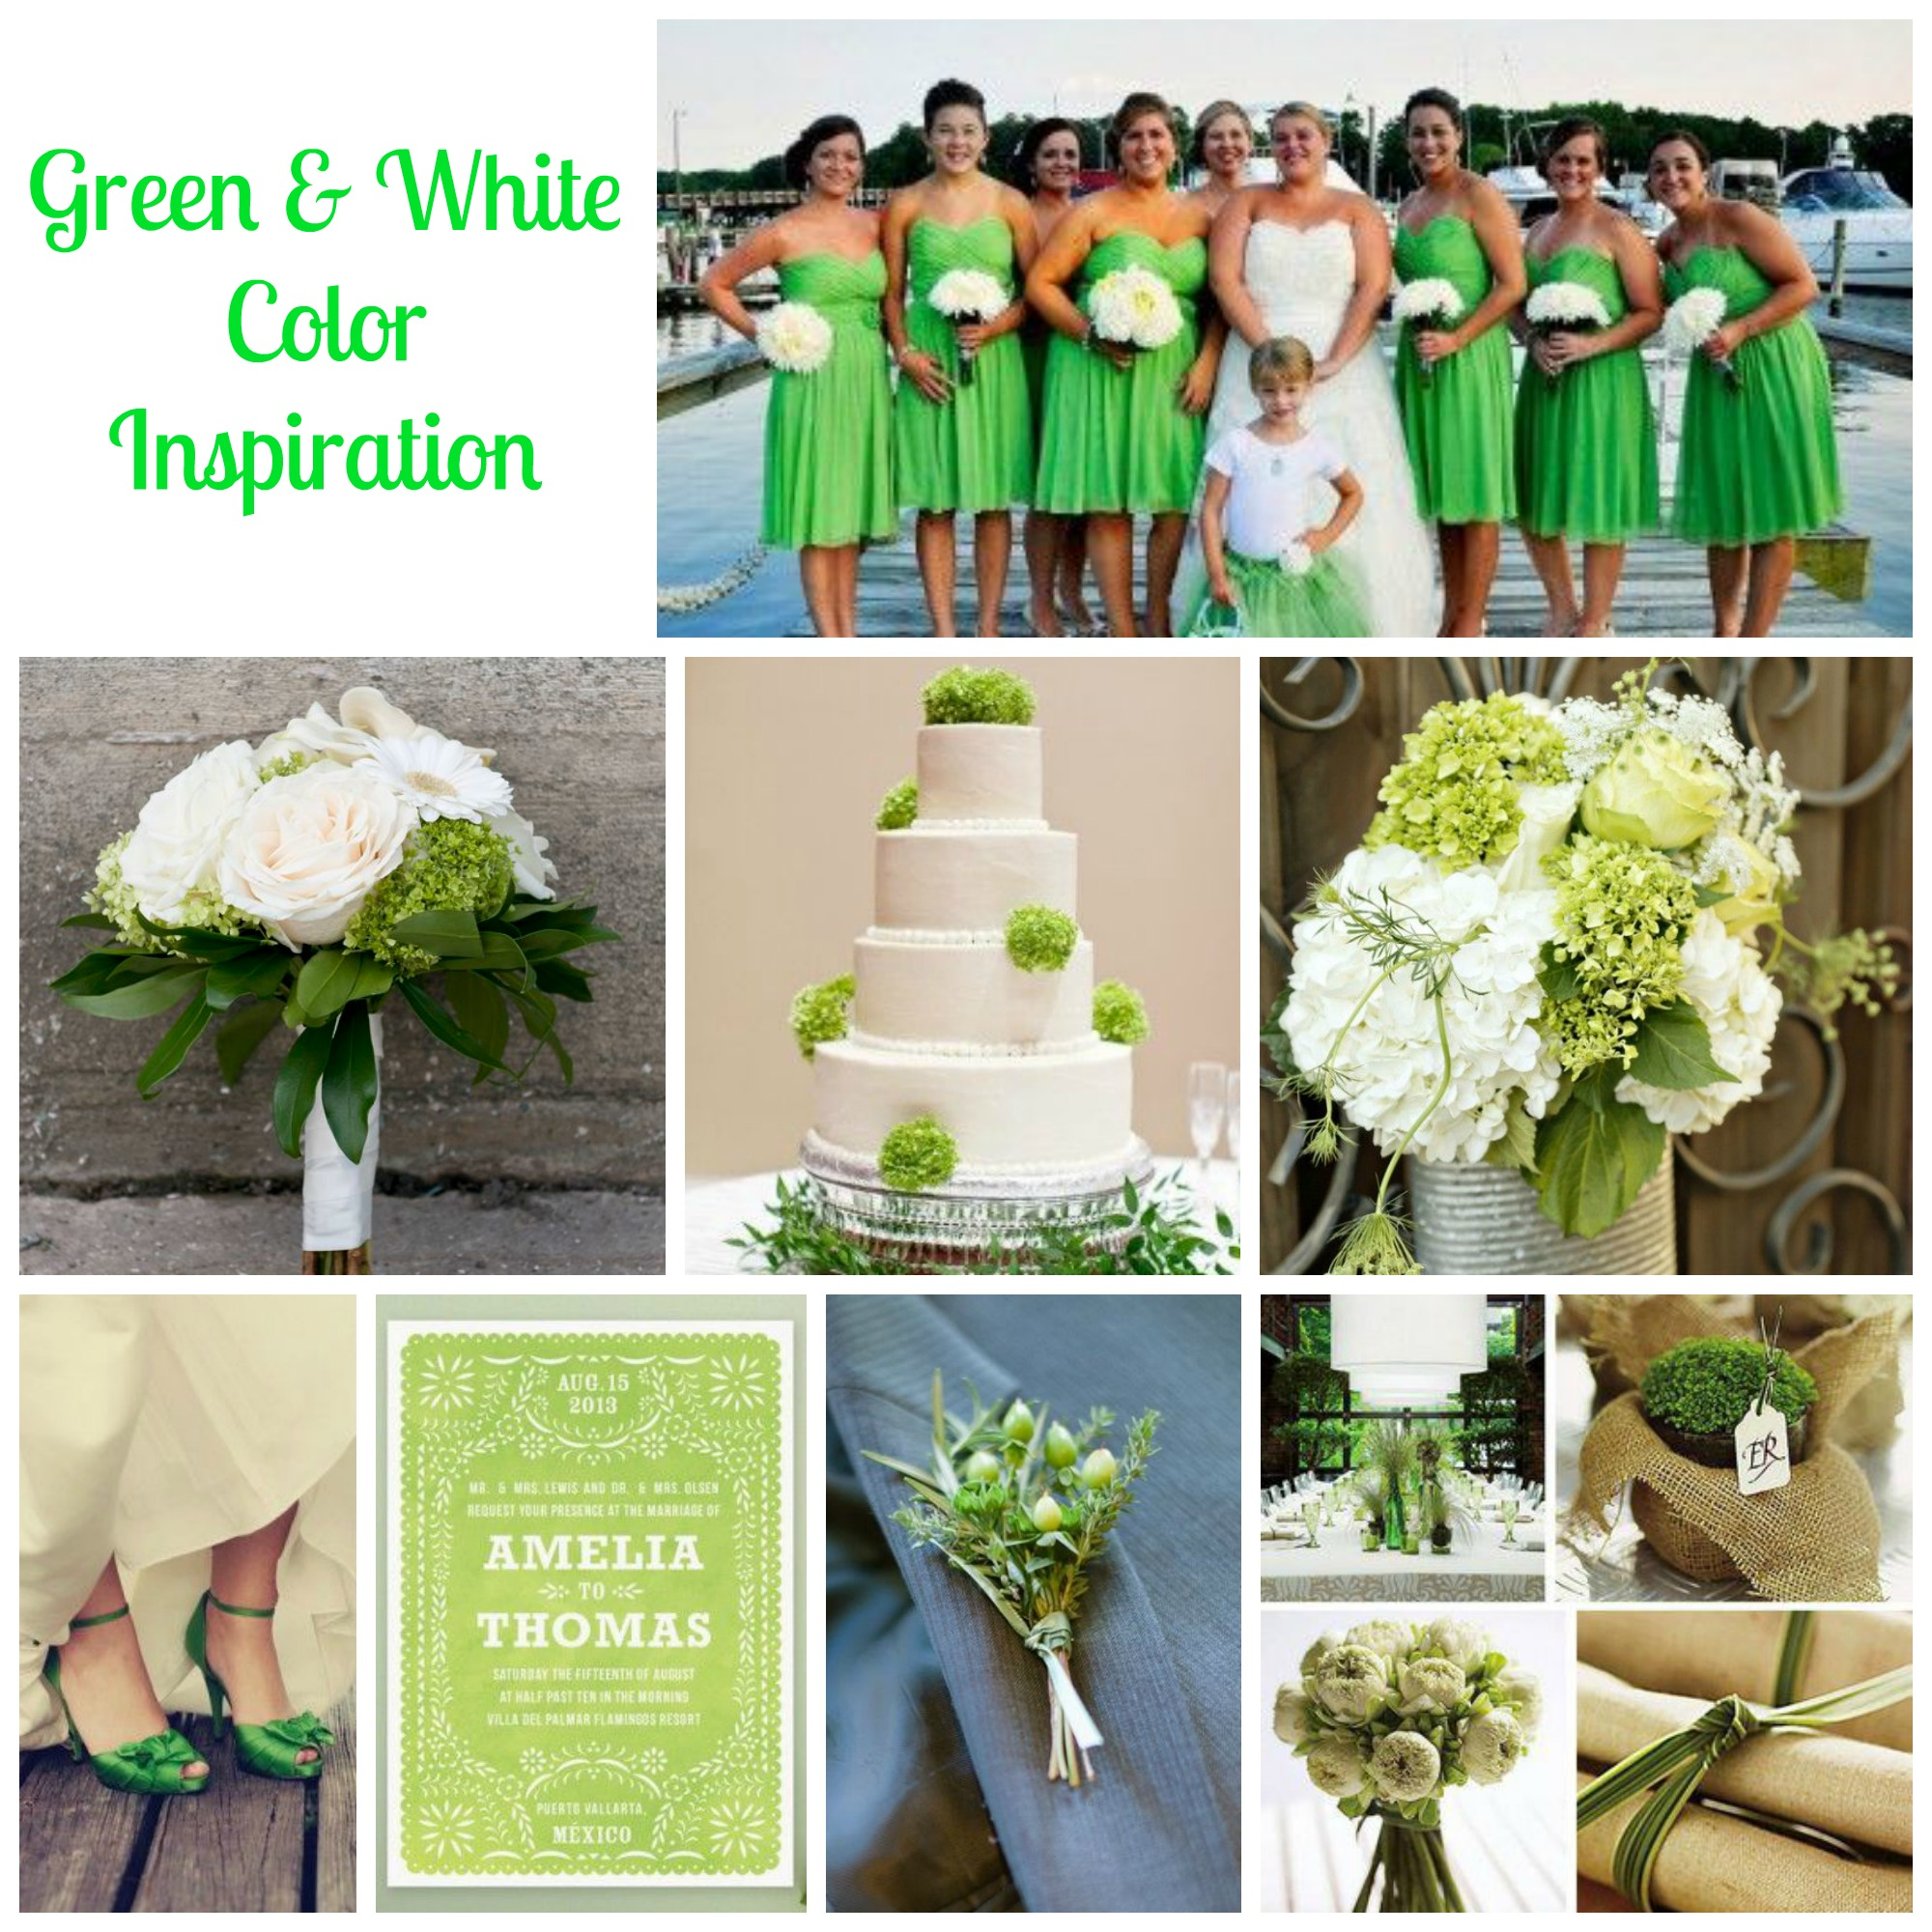 Green white wedding ideas rustic wedding chic for All white wedding theme pictures